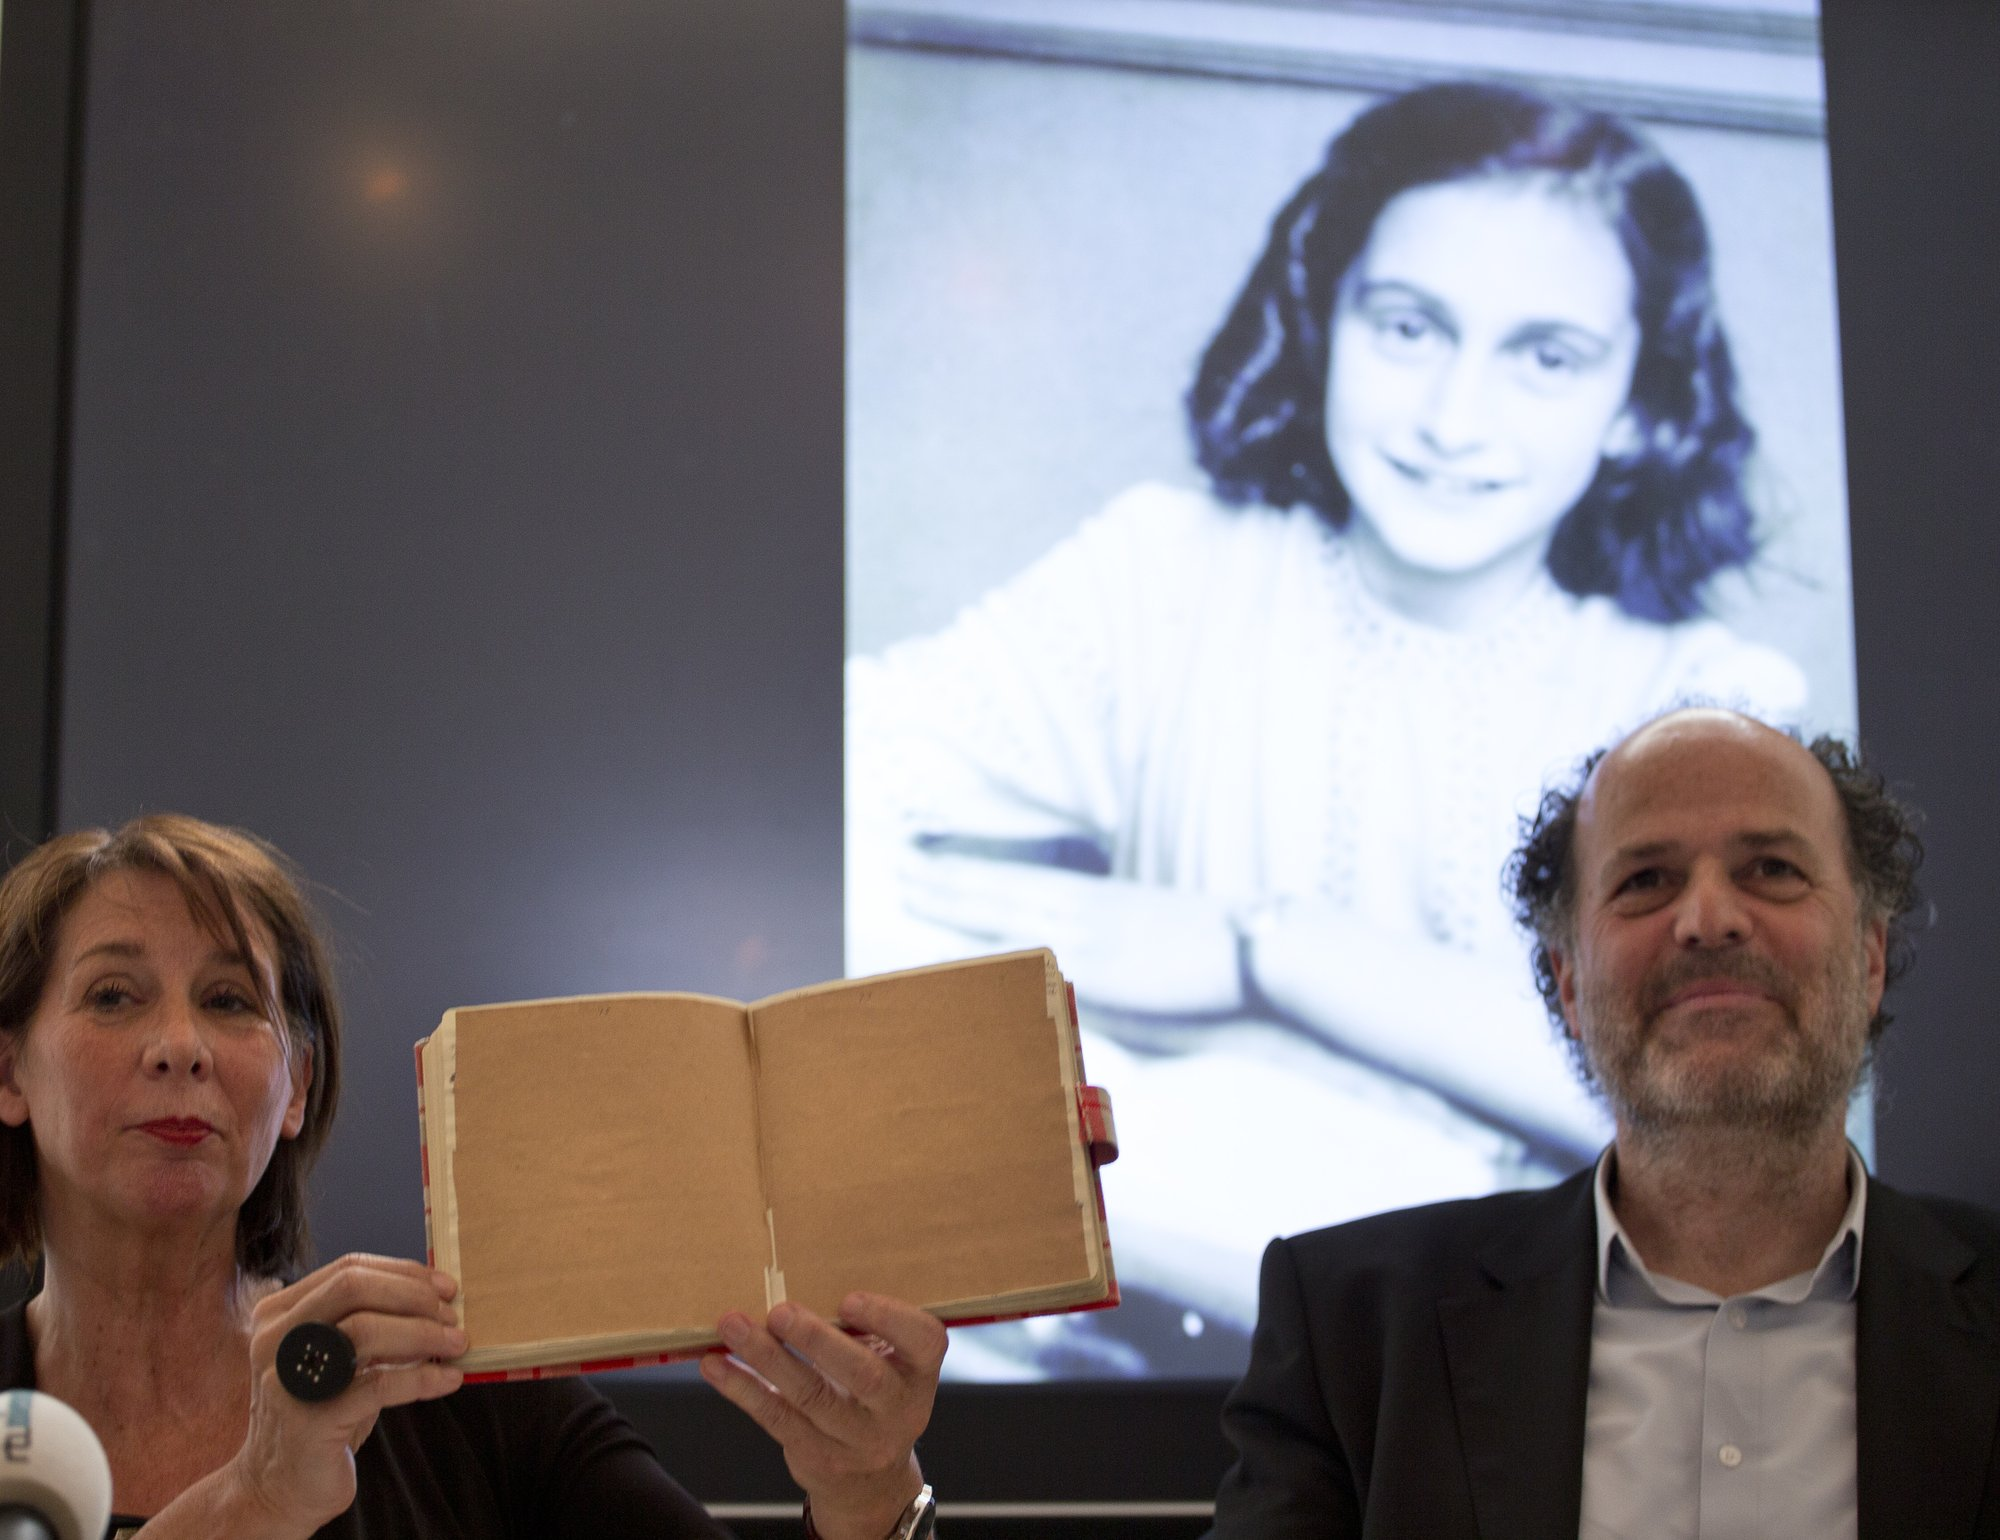 Dutch researchers uncover <b>dirty jokes</b> in Anne Frank&#39;s diary